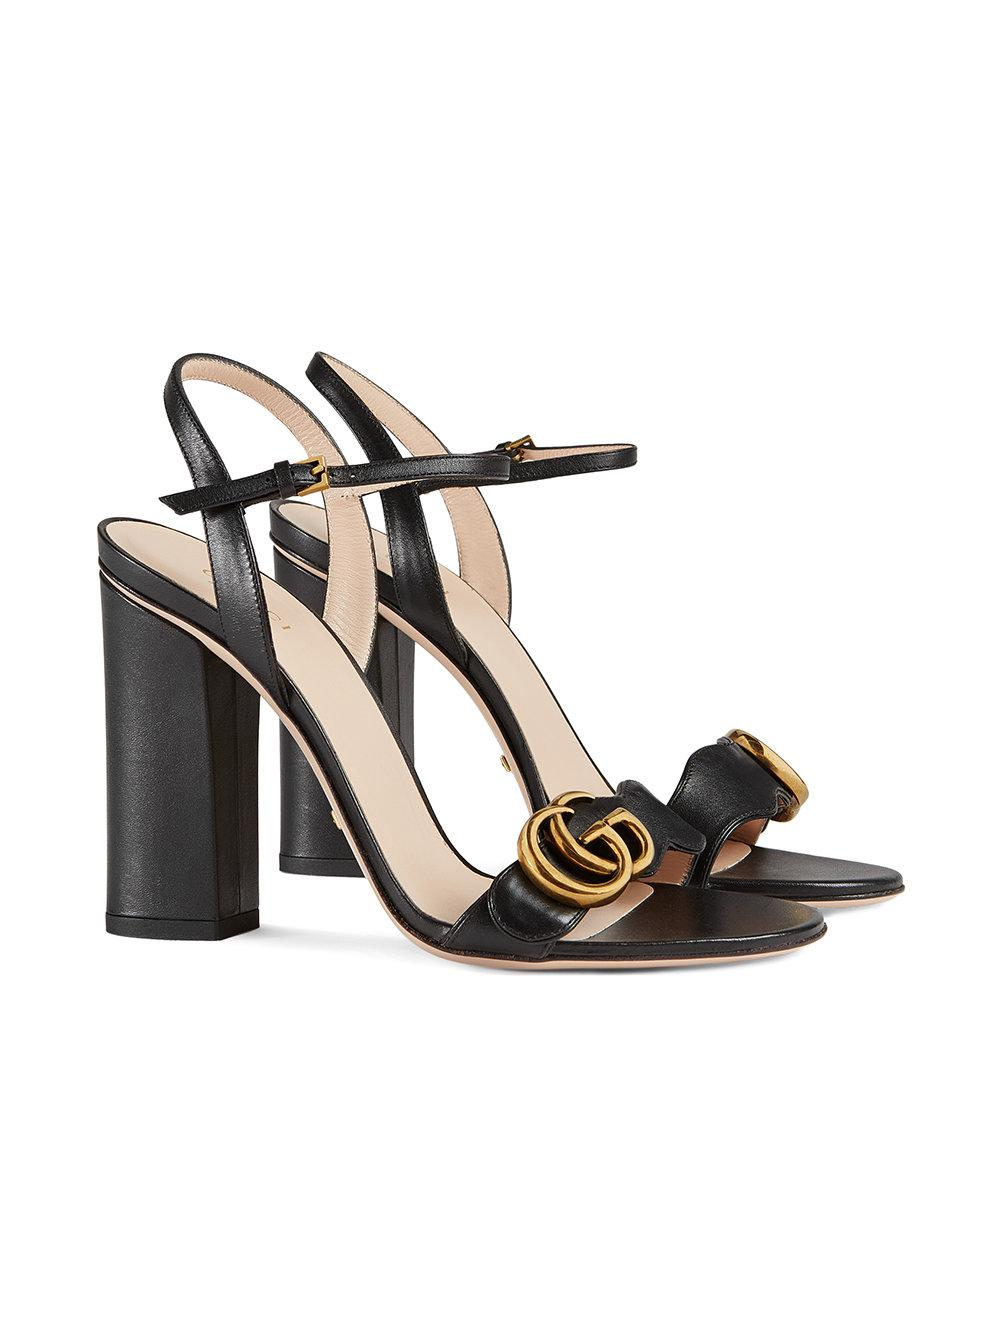 Lyst - Gucci Leather Sandals in Black